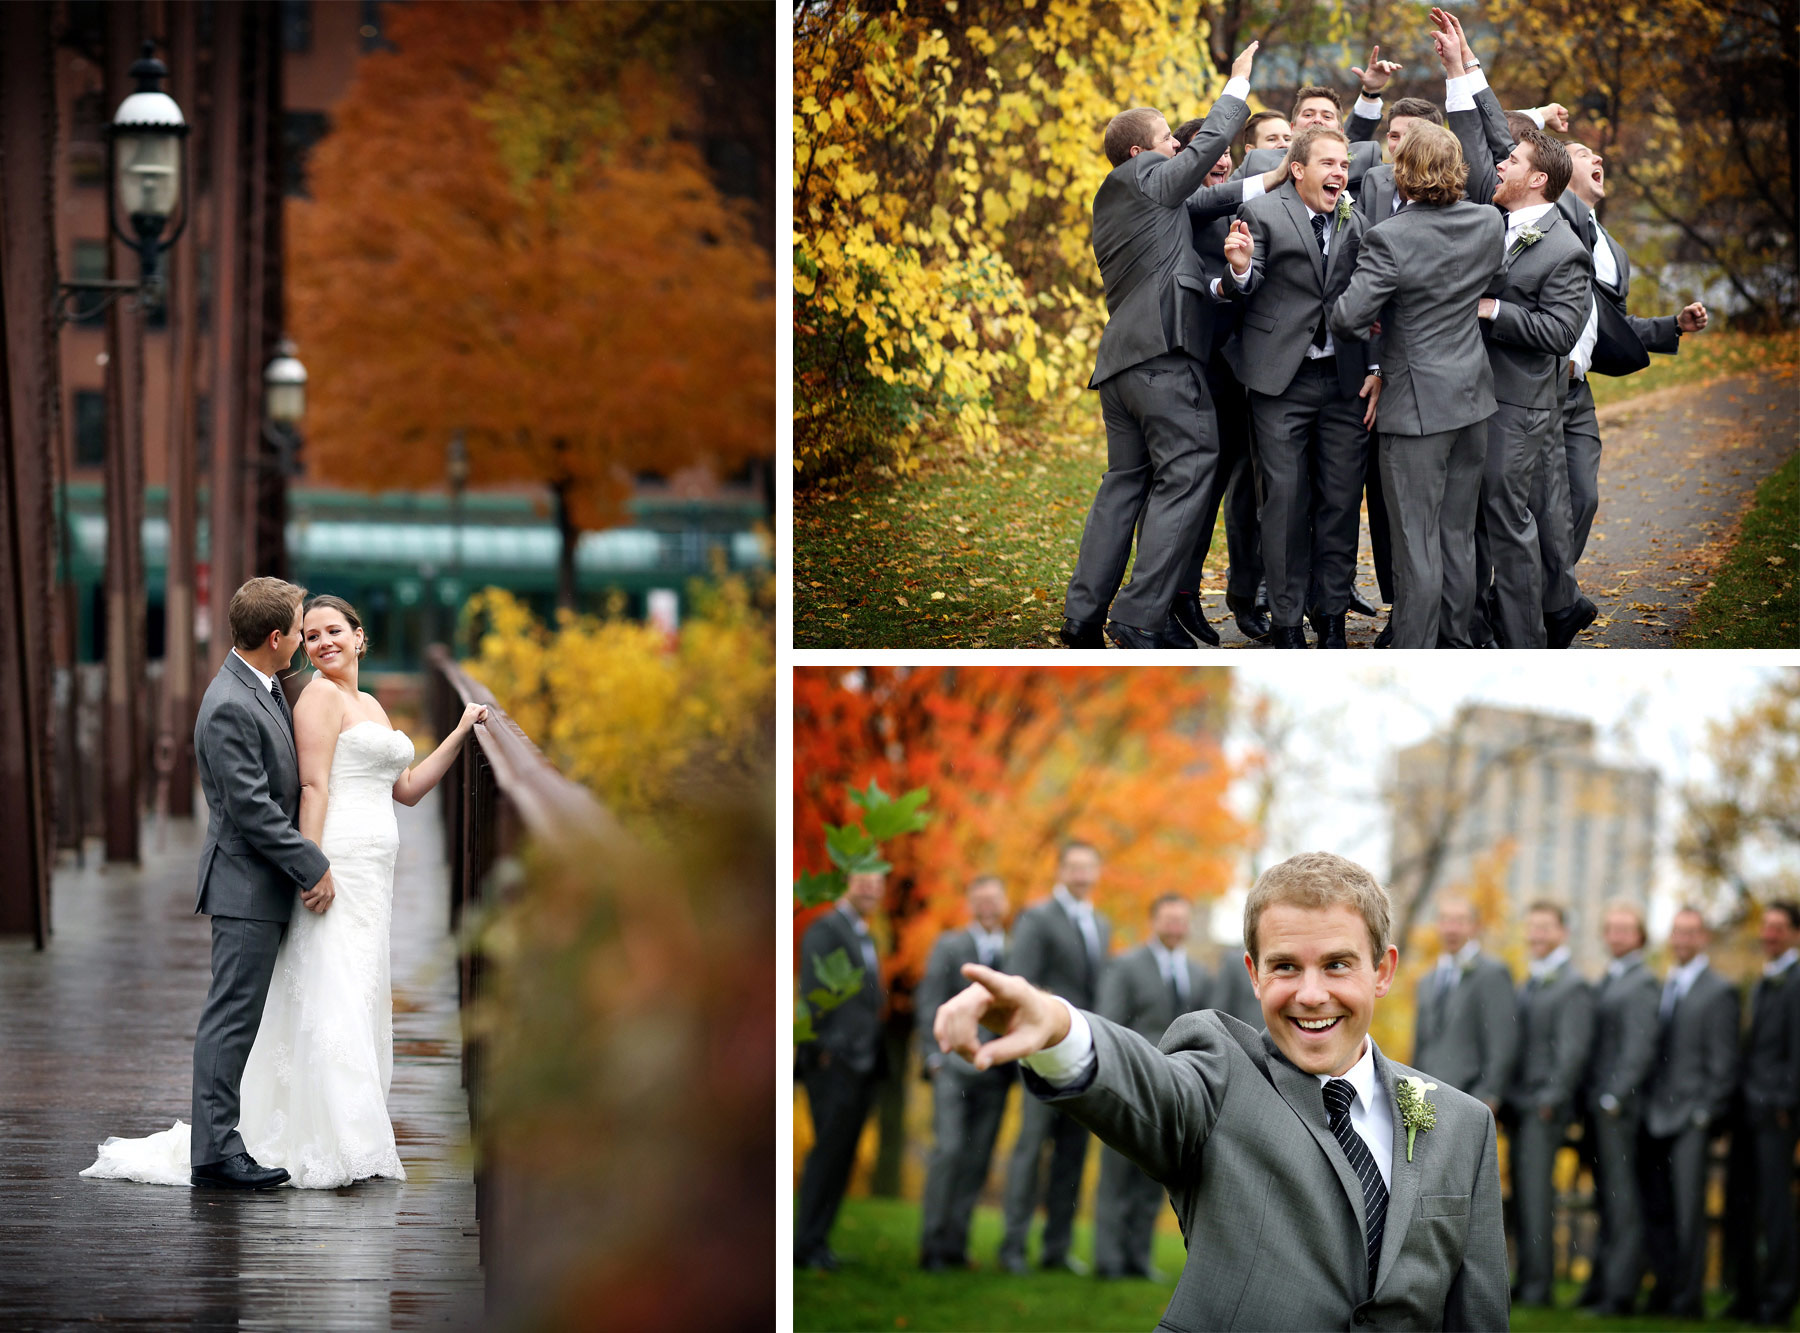 04-Minneapolis-Minnesota-Wedding-Photography-Downtown-Rain-Nicollet-Island-Pavilion-Fall-Colors-Fall-Leaves-Autumn-Kalley-and-Ben.jpg